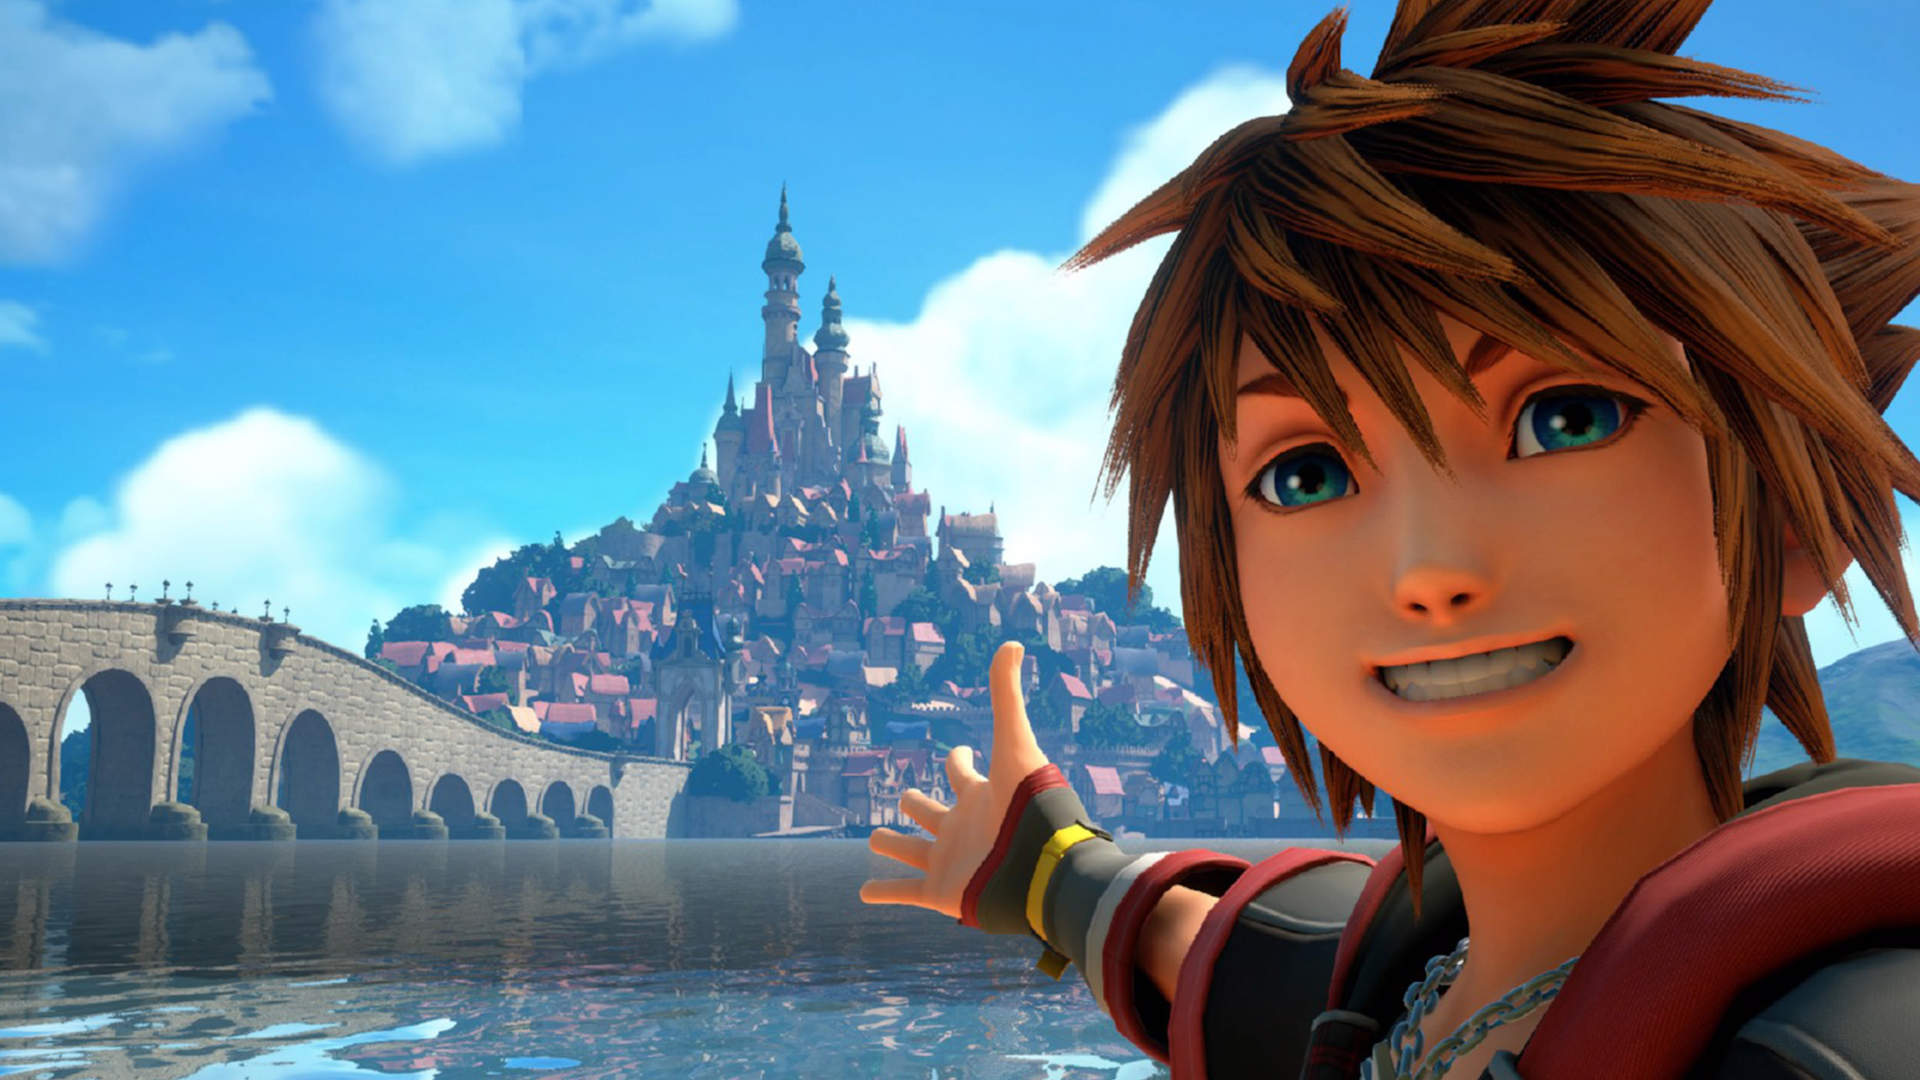 Nomura says to expect 'good news' for the Kingdom Hearts 20th anniversary in 2022 screenshot